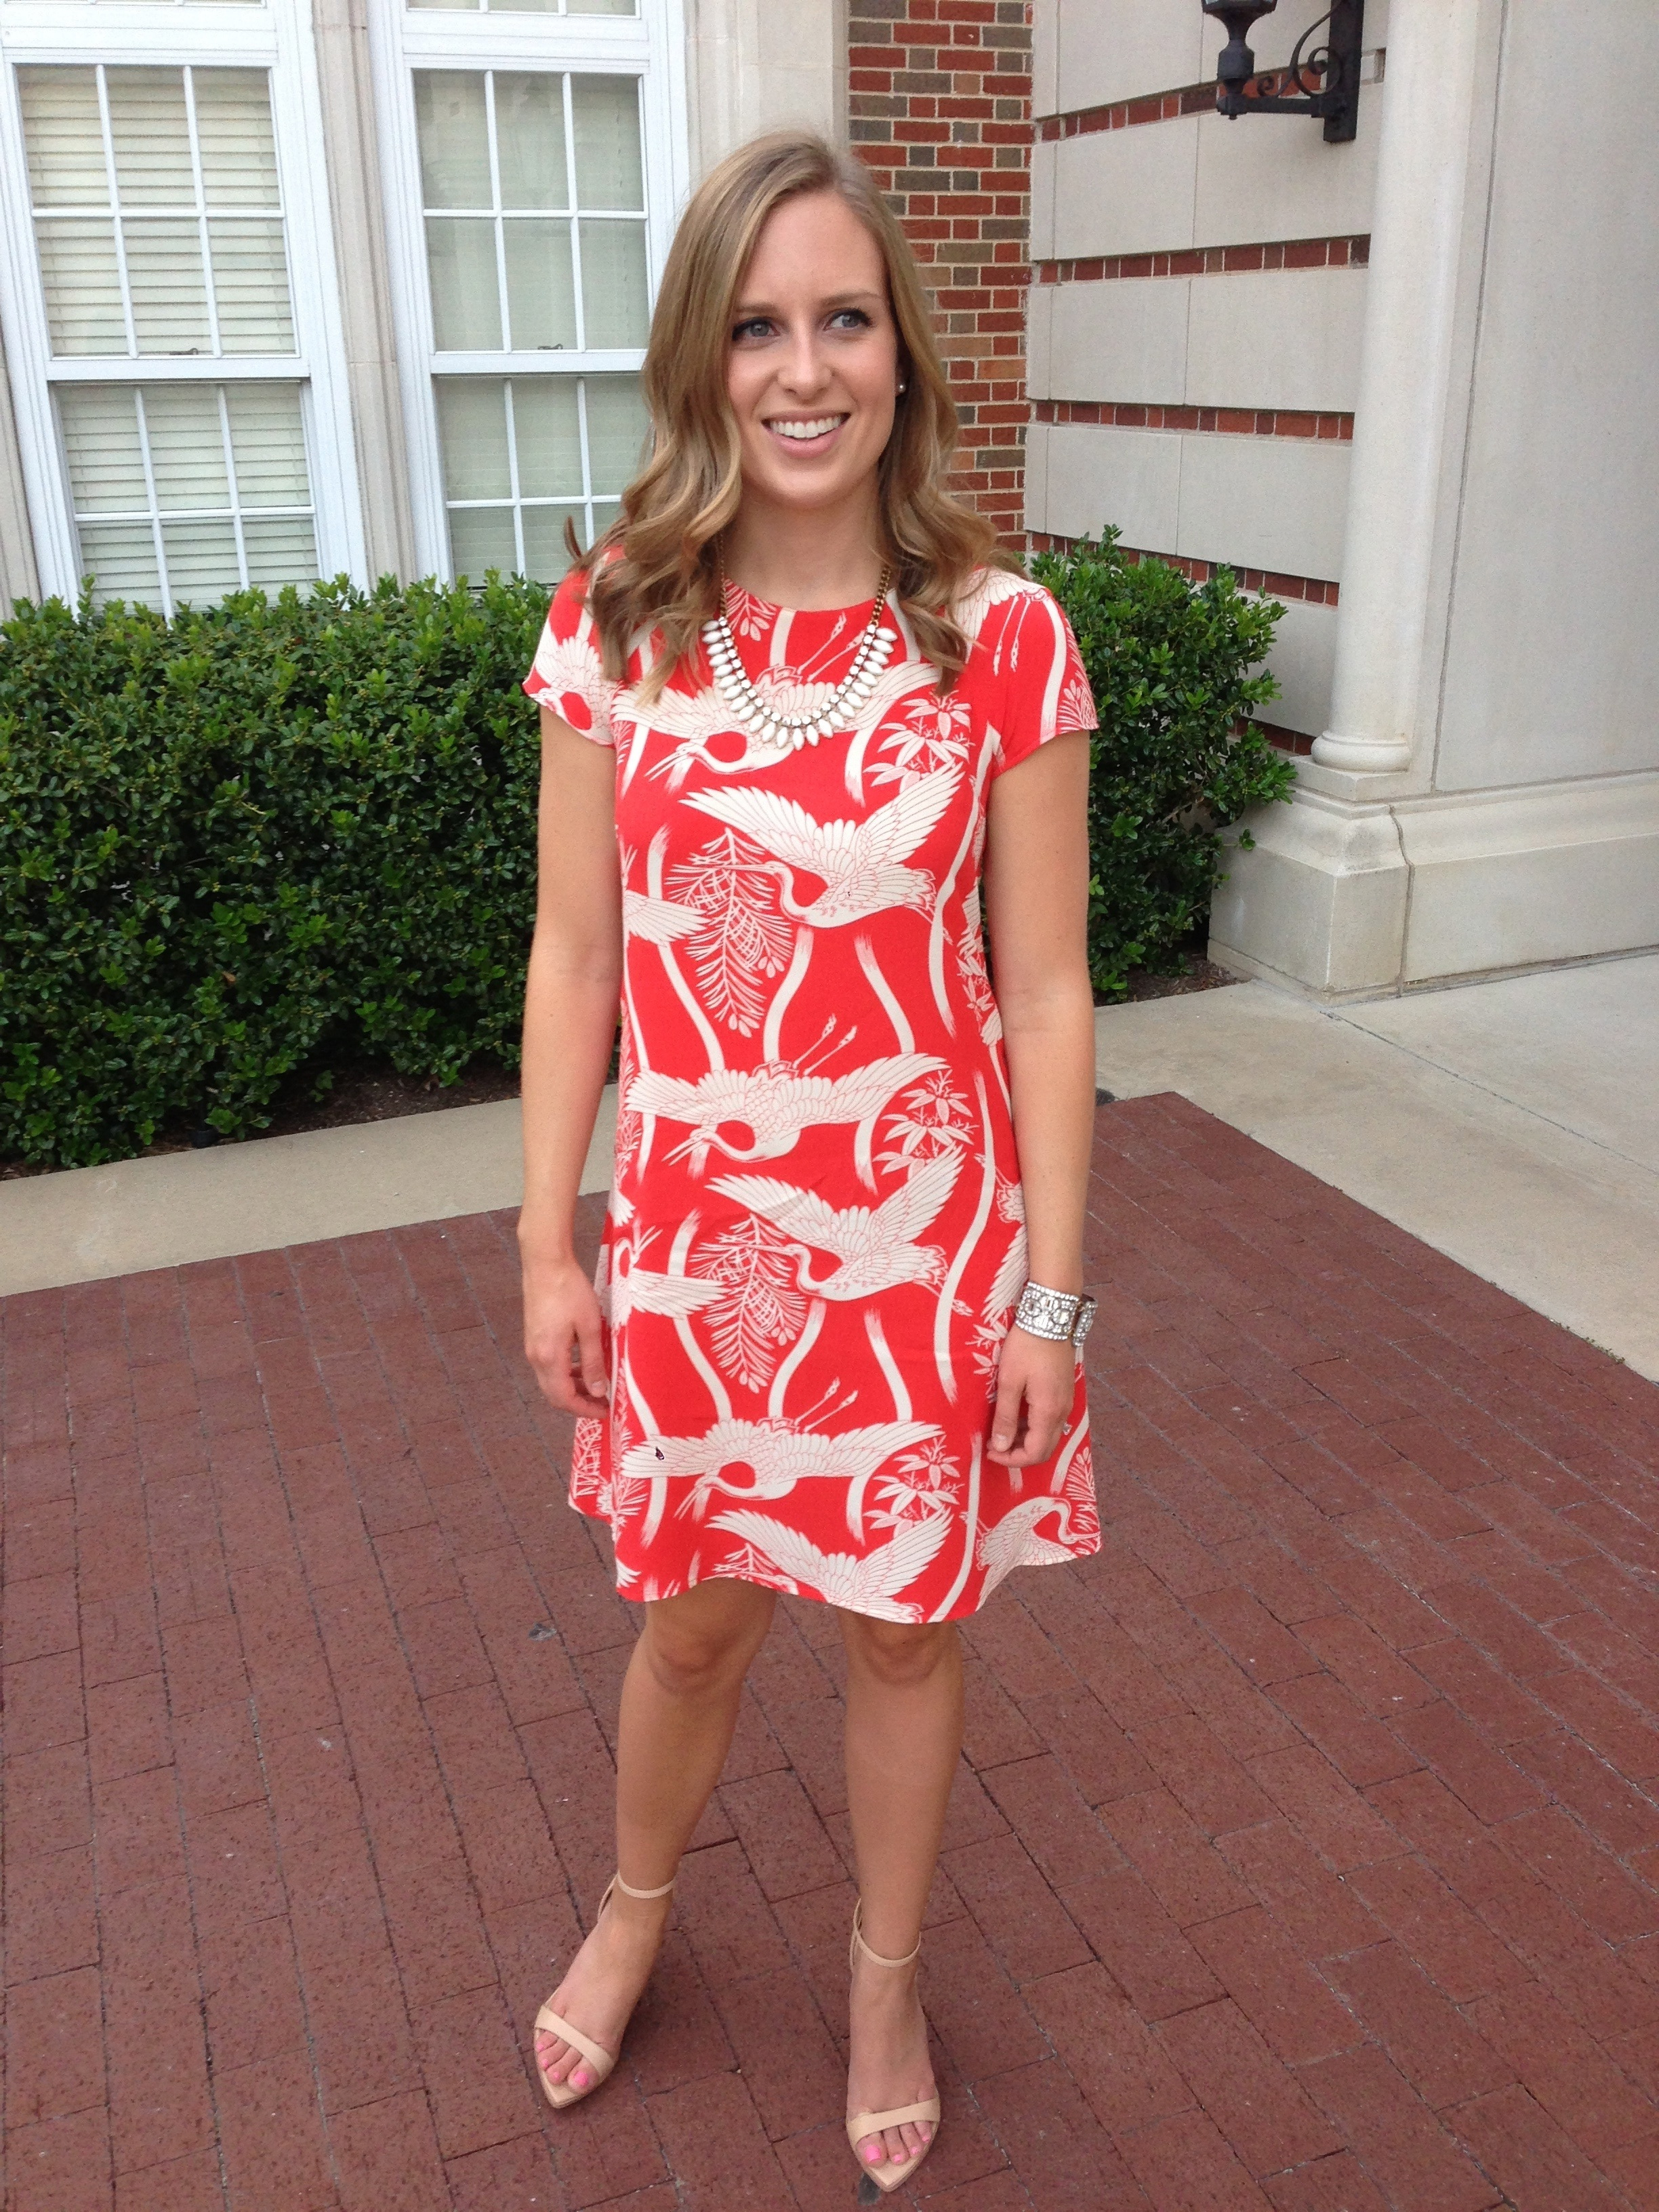 Zara dress, Zara heels, J, Crew necklace (similar), J. Crew bracelet (old)